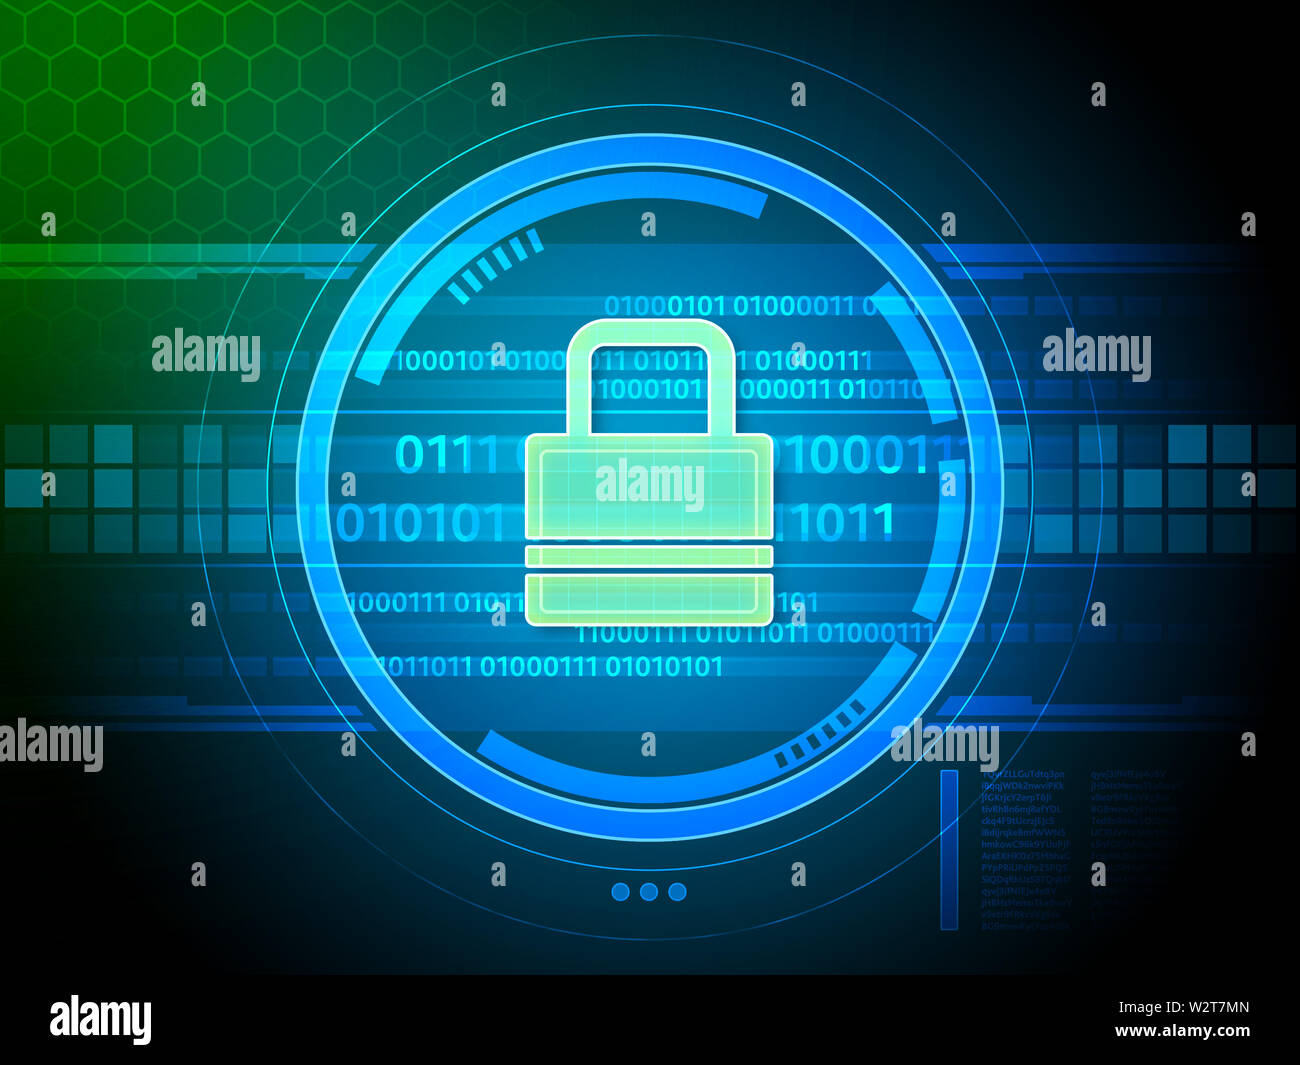 Security lock protecting a data stream. Digital illustration. - Stock Image